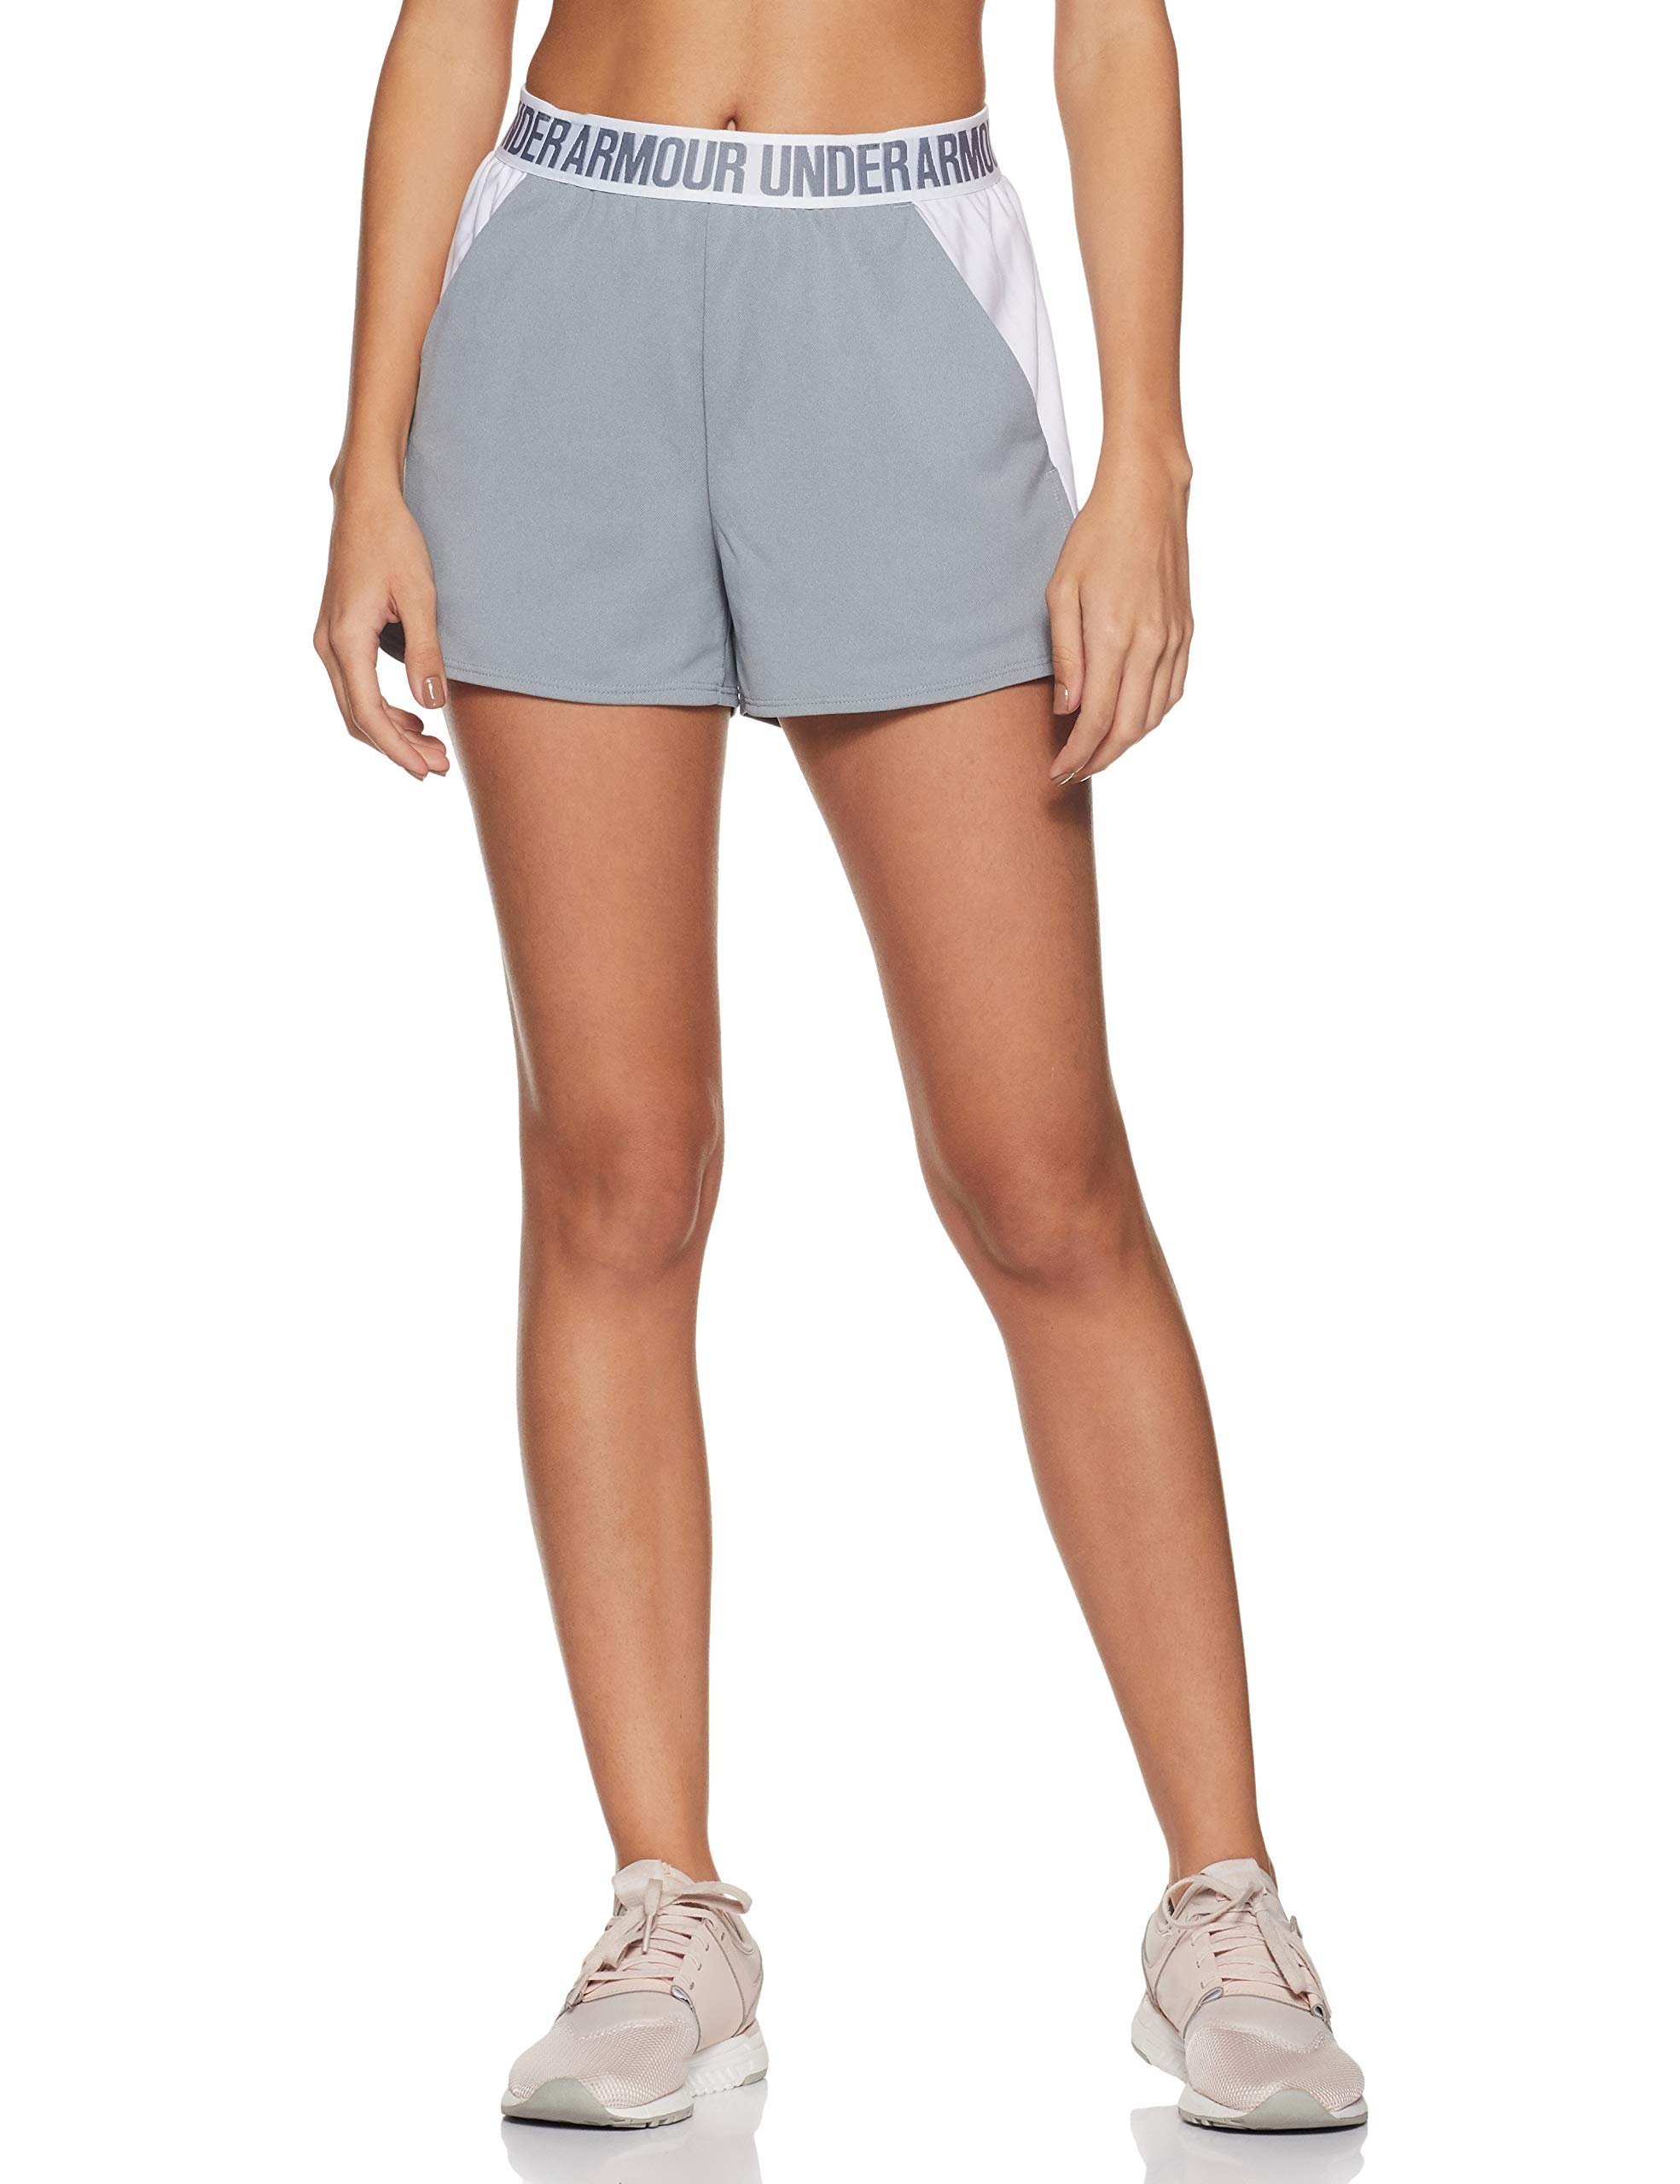 Under Armour Women's Play Up Shorts 2.0, True Gray Heather (025)/White, XX-Small